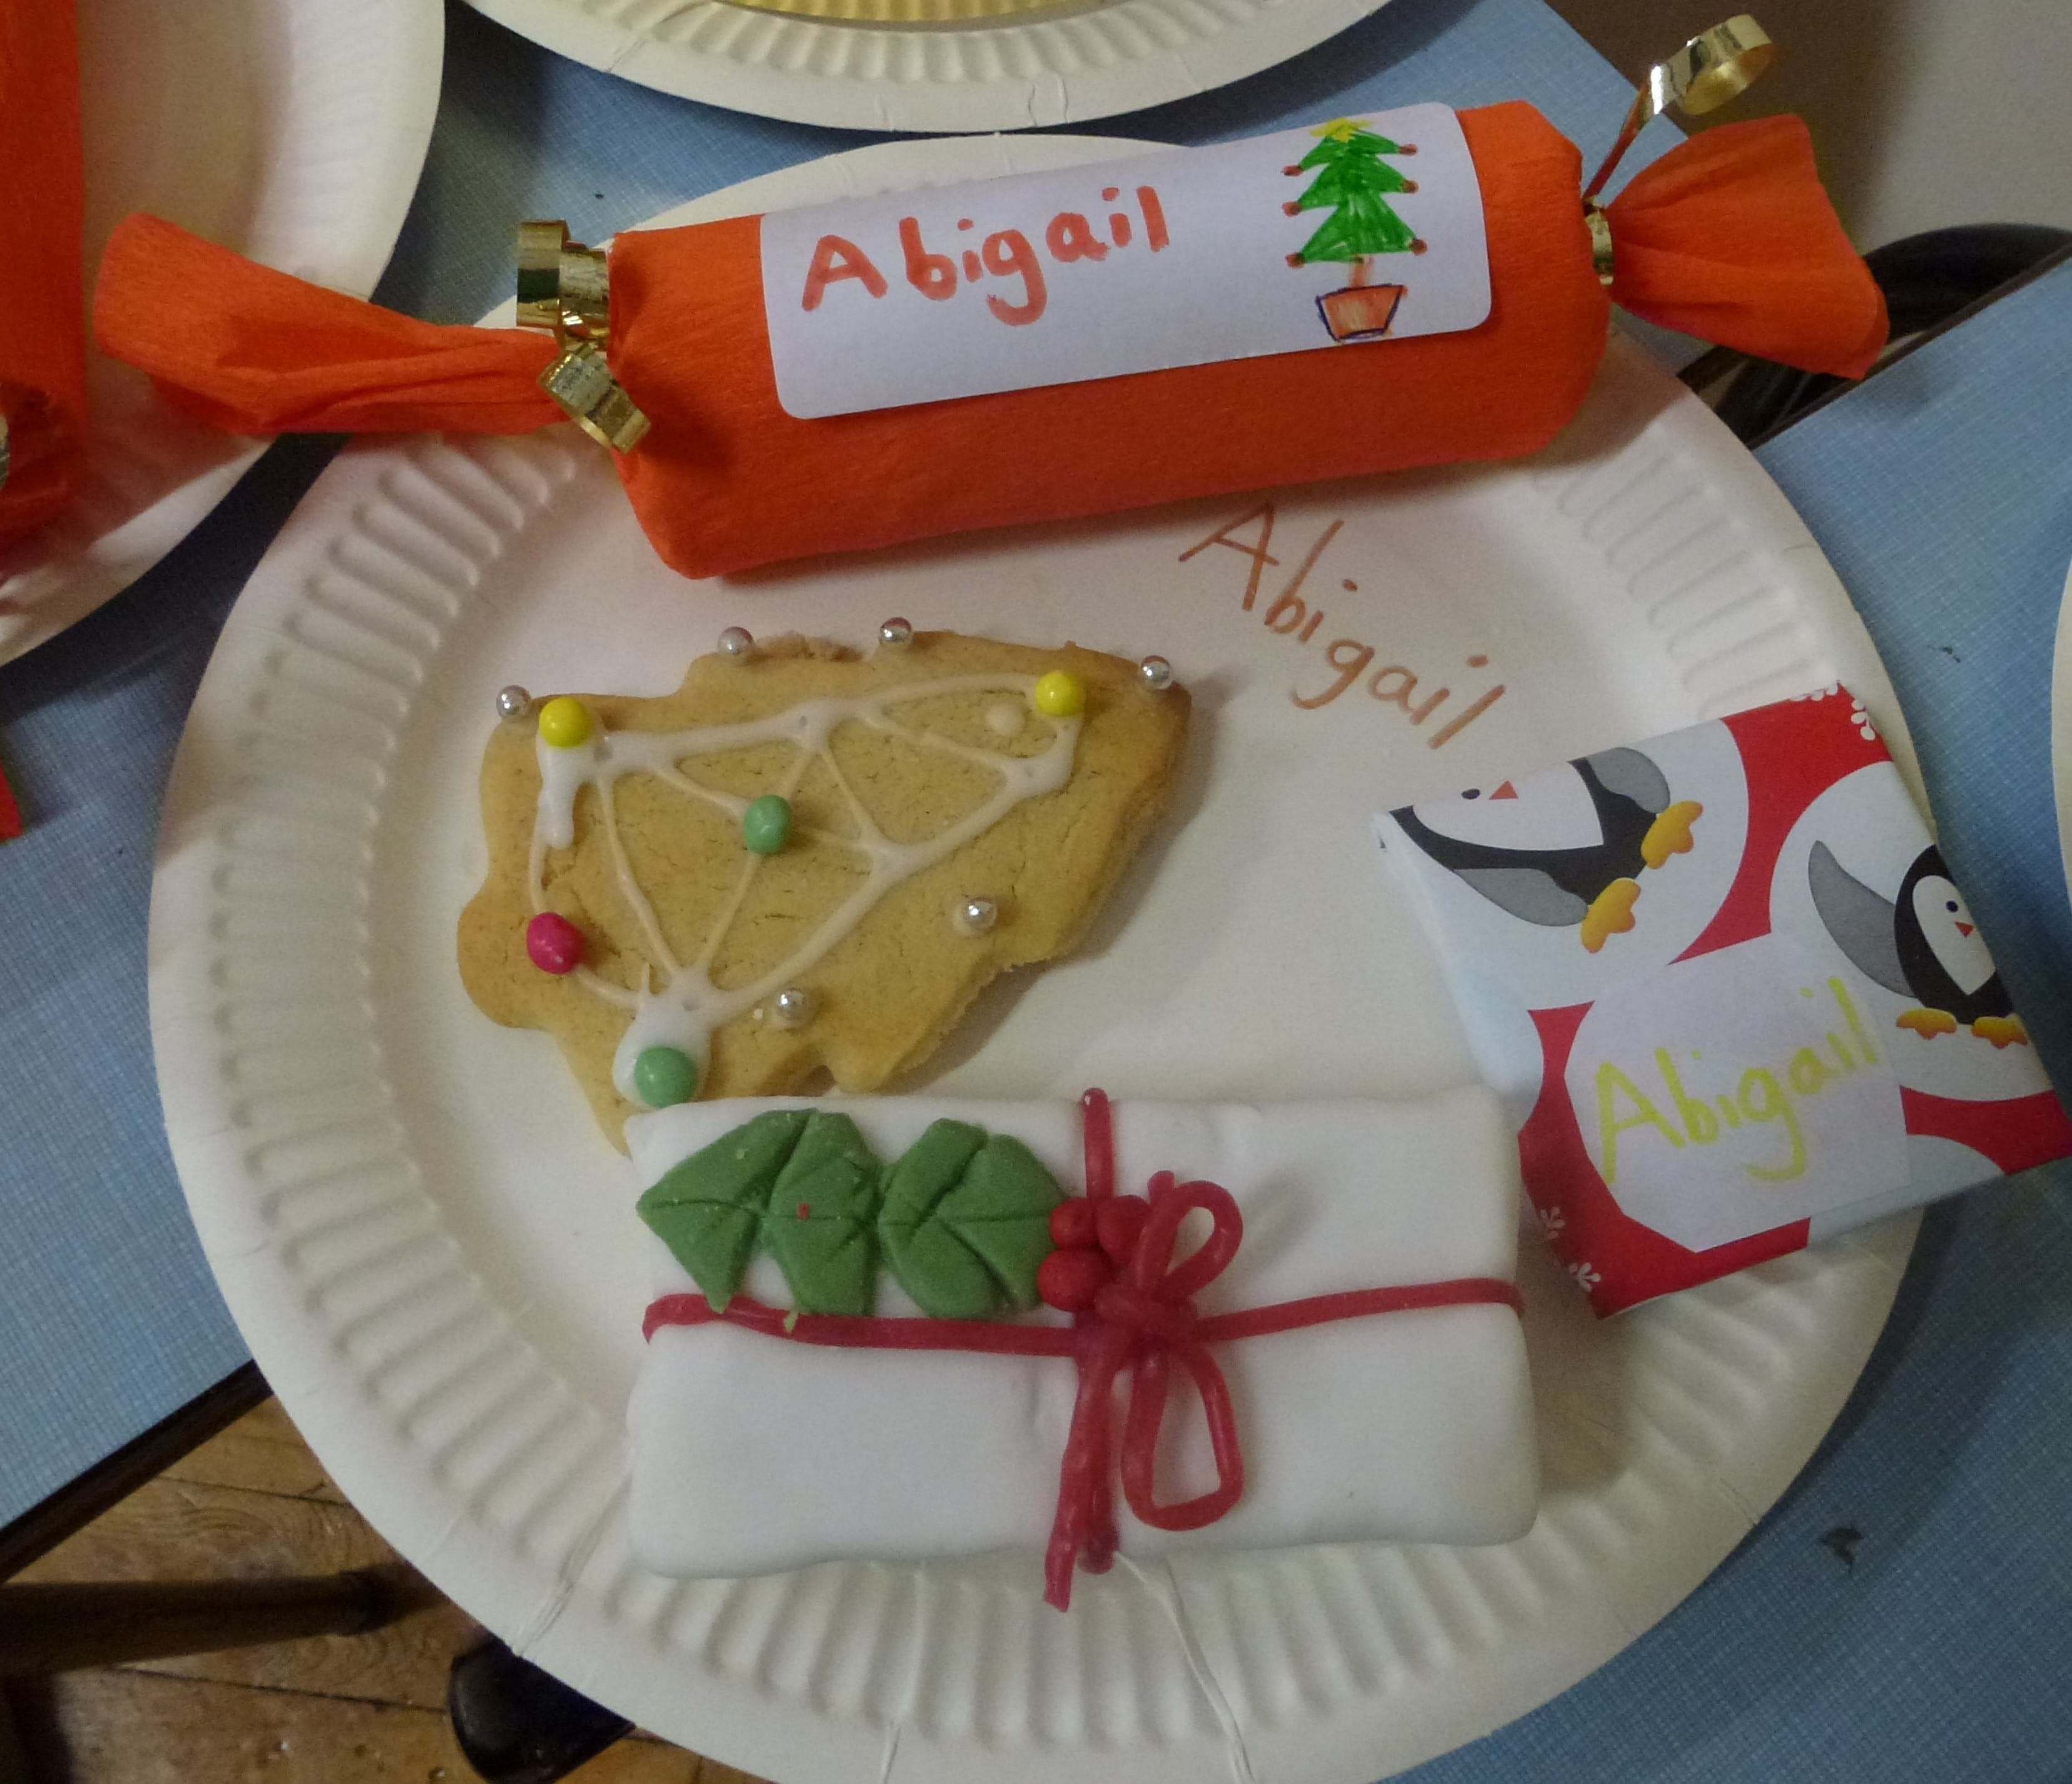 Some of the things Abigail made at December's Messy Church